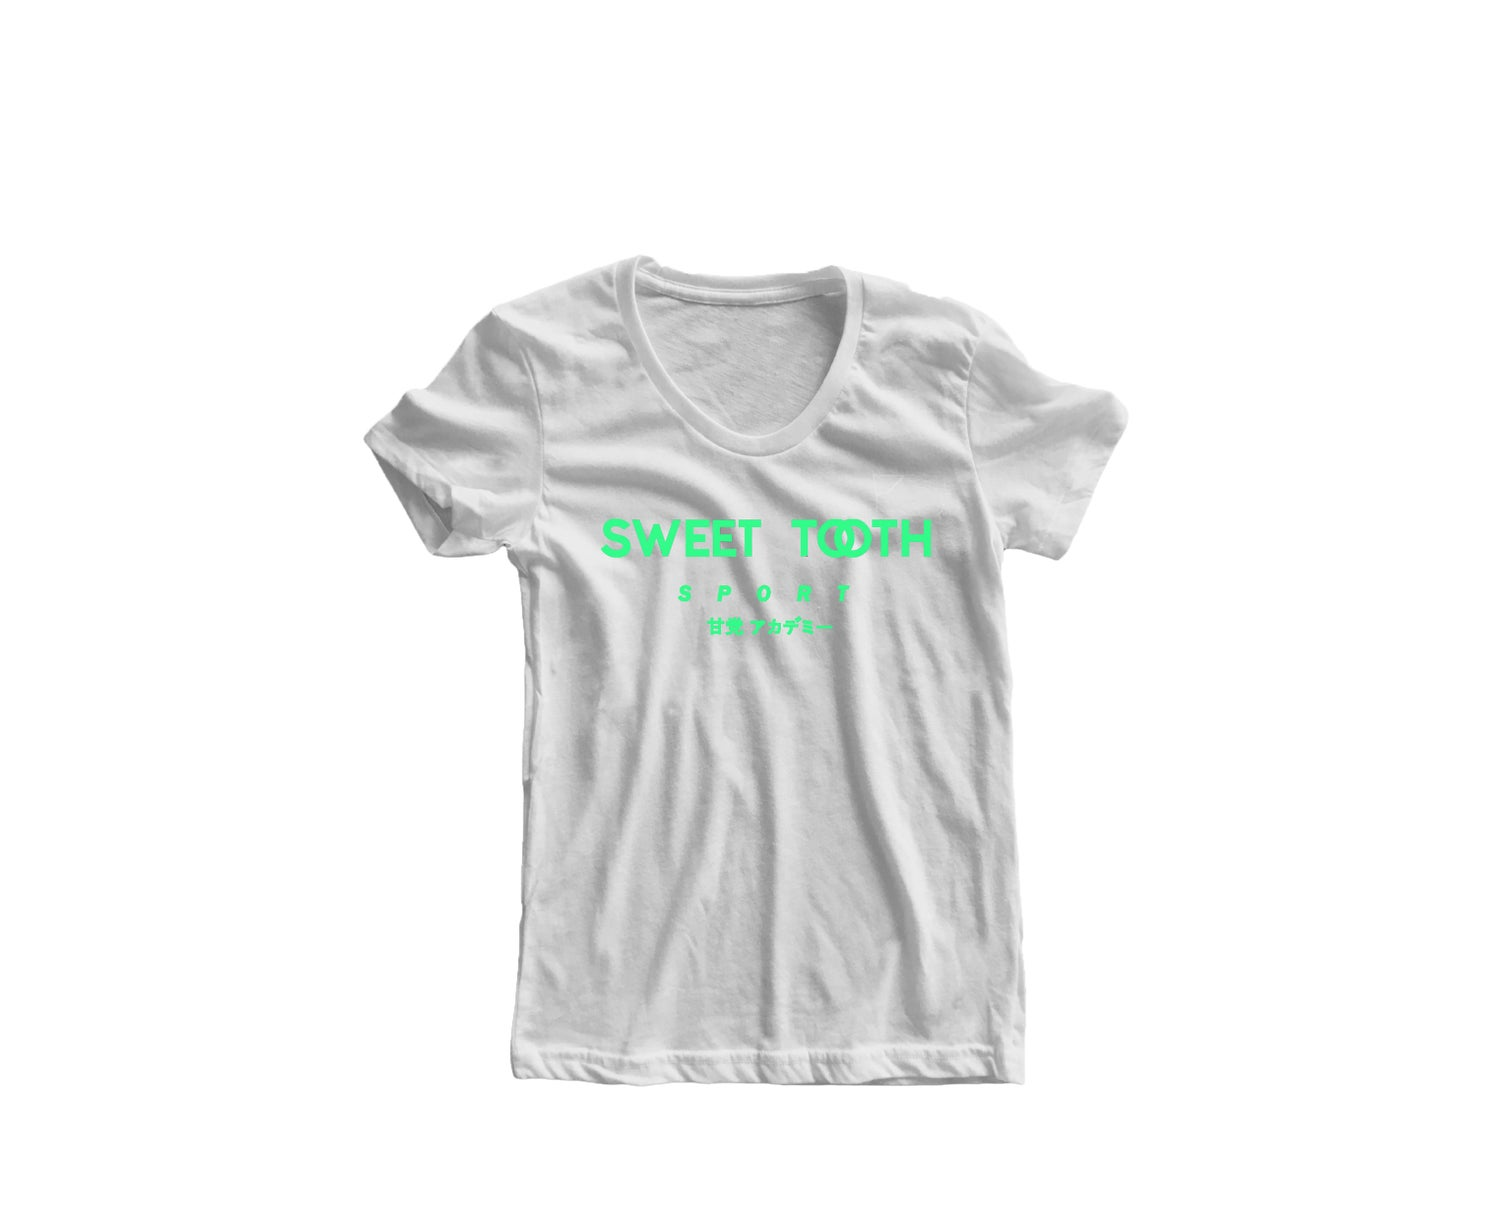 Image of Sweet Tooth Sport Tee White & Neon Green (Womens)